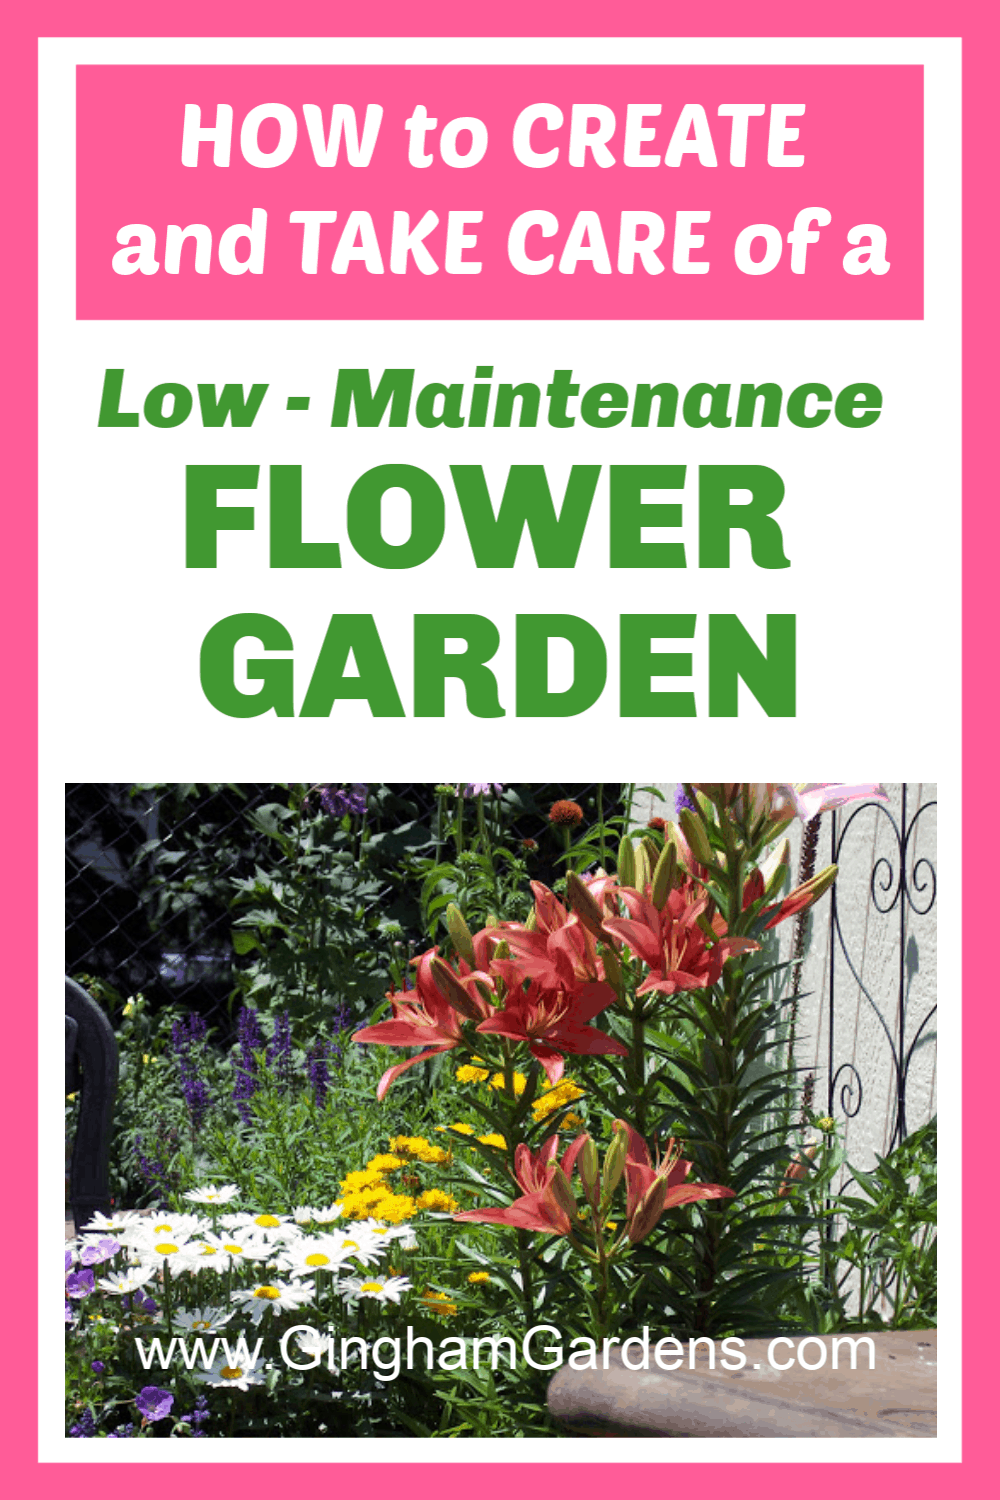 Image of a Flower Garden with Text Overlay - How to Create and Take Care of a Low Maintenance Flower Garden